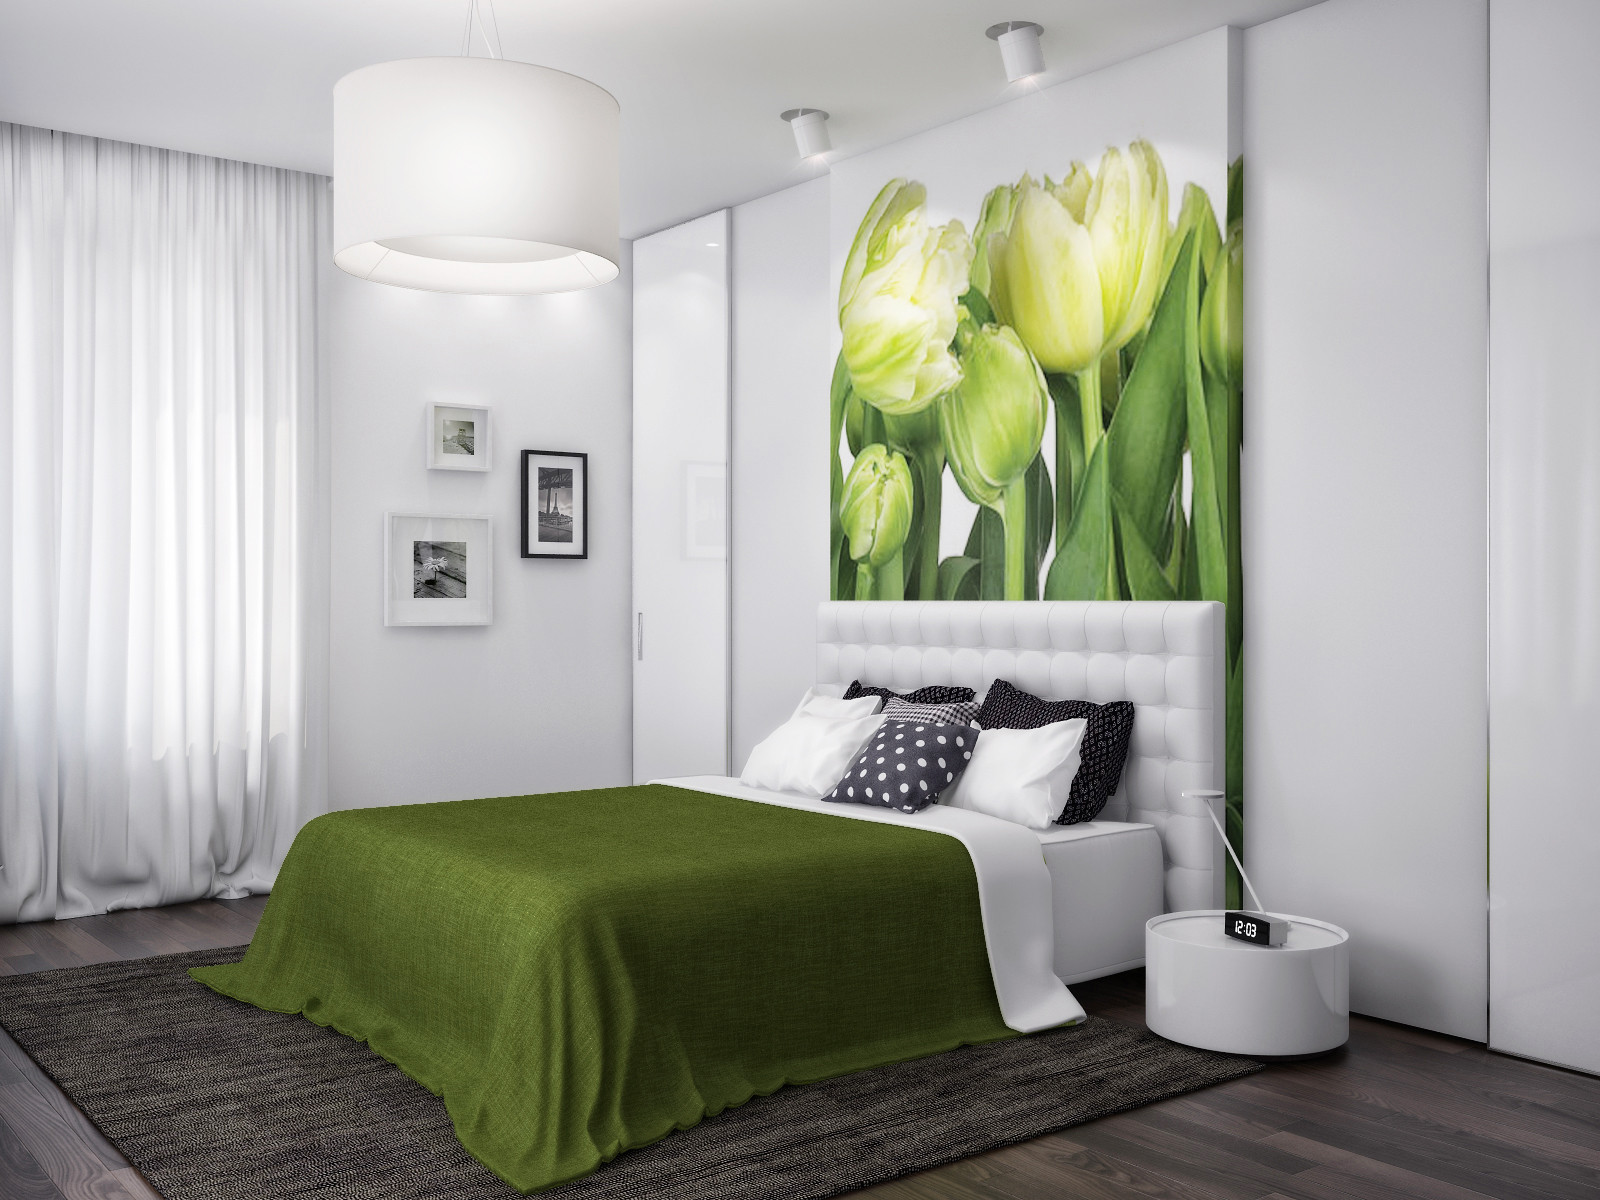 Best ideas about Green Bedroom Ideas . Save or Pin Green white nature bedroom Now.